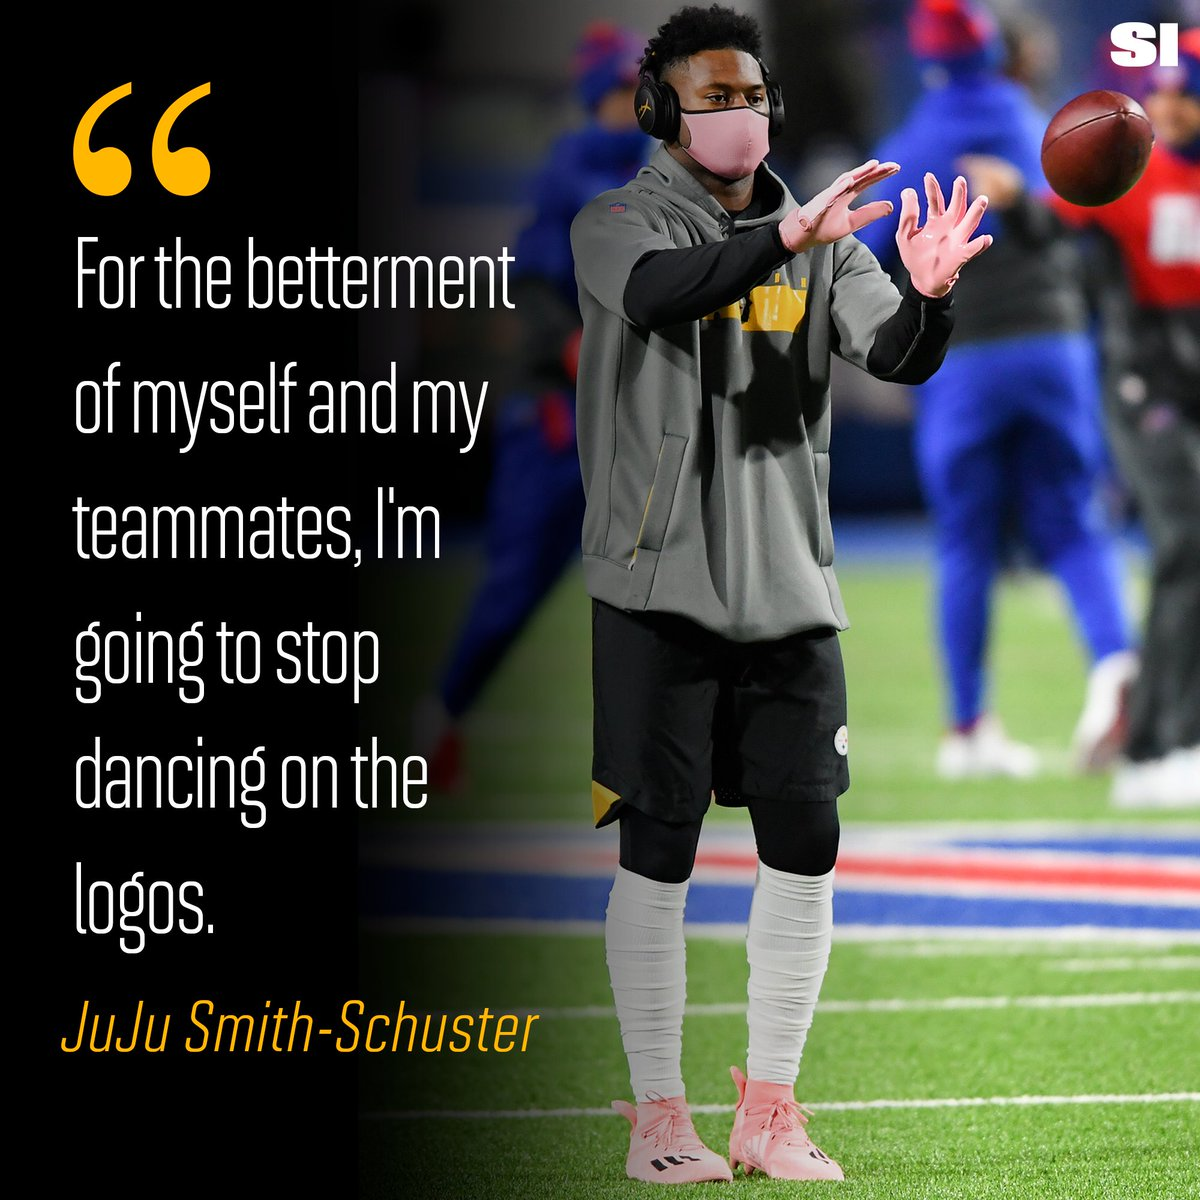 JuJu Smith-Schuster says his pregame routine of dancing on the midfield logo is no more